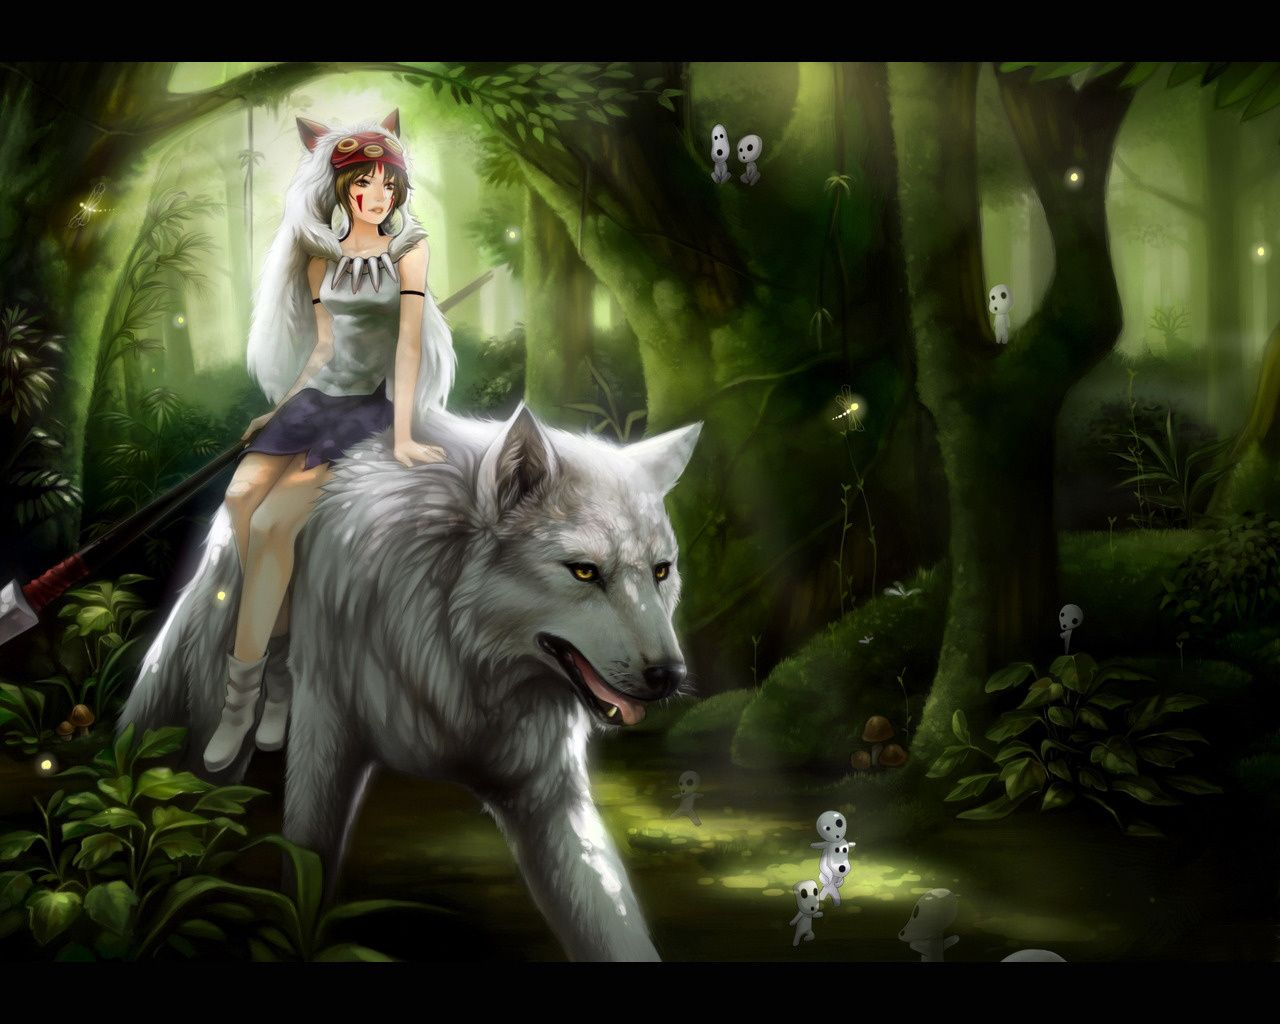 Anime Wolf Girl Wallpapers Top Free Anime Wolf Girl Backgrounds Wallpaperaccess